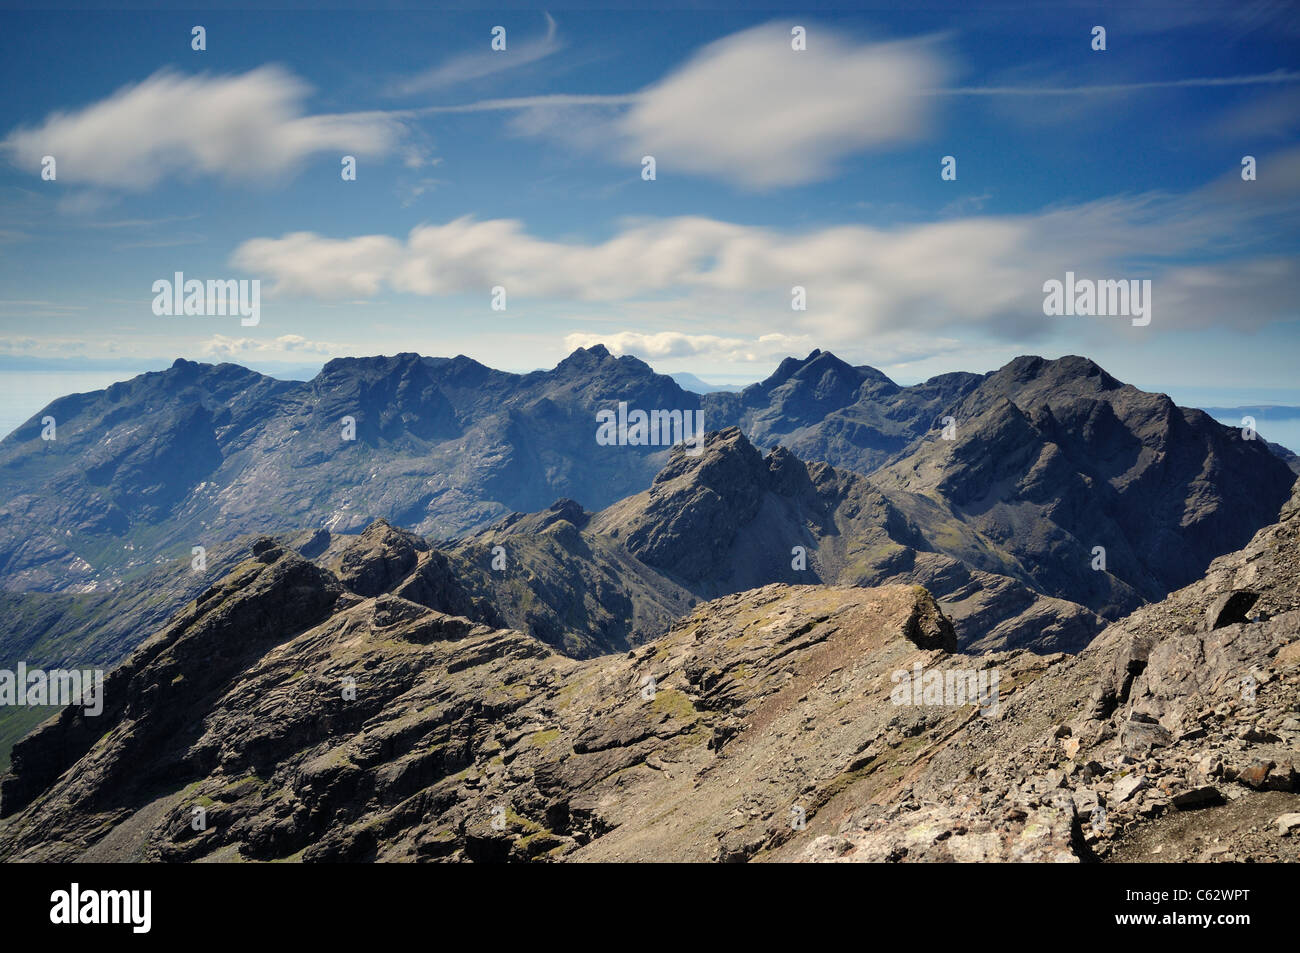 View over the dramatic jagged peaks of the Black Cuillin ridge from Bruach na Frithe, Isle of Skye, Scotland - Stock Image